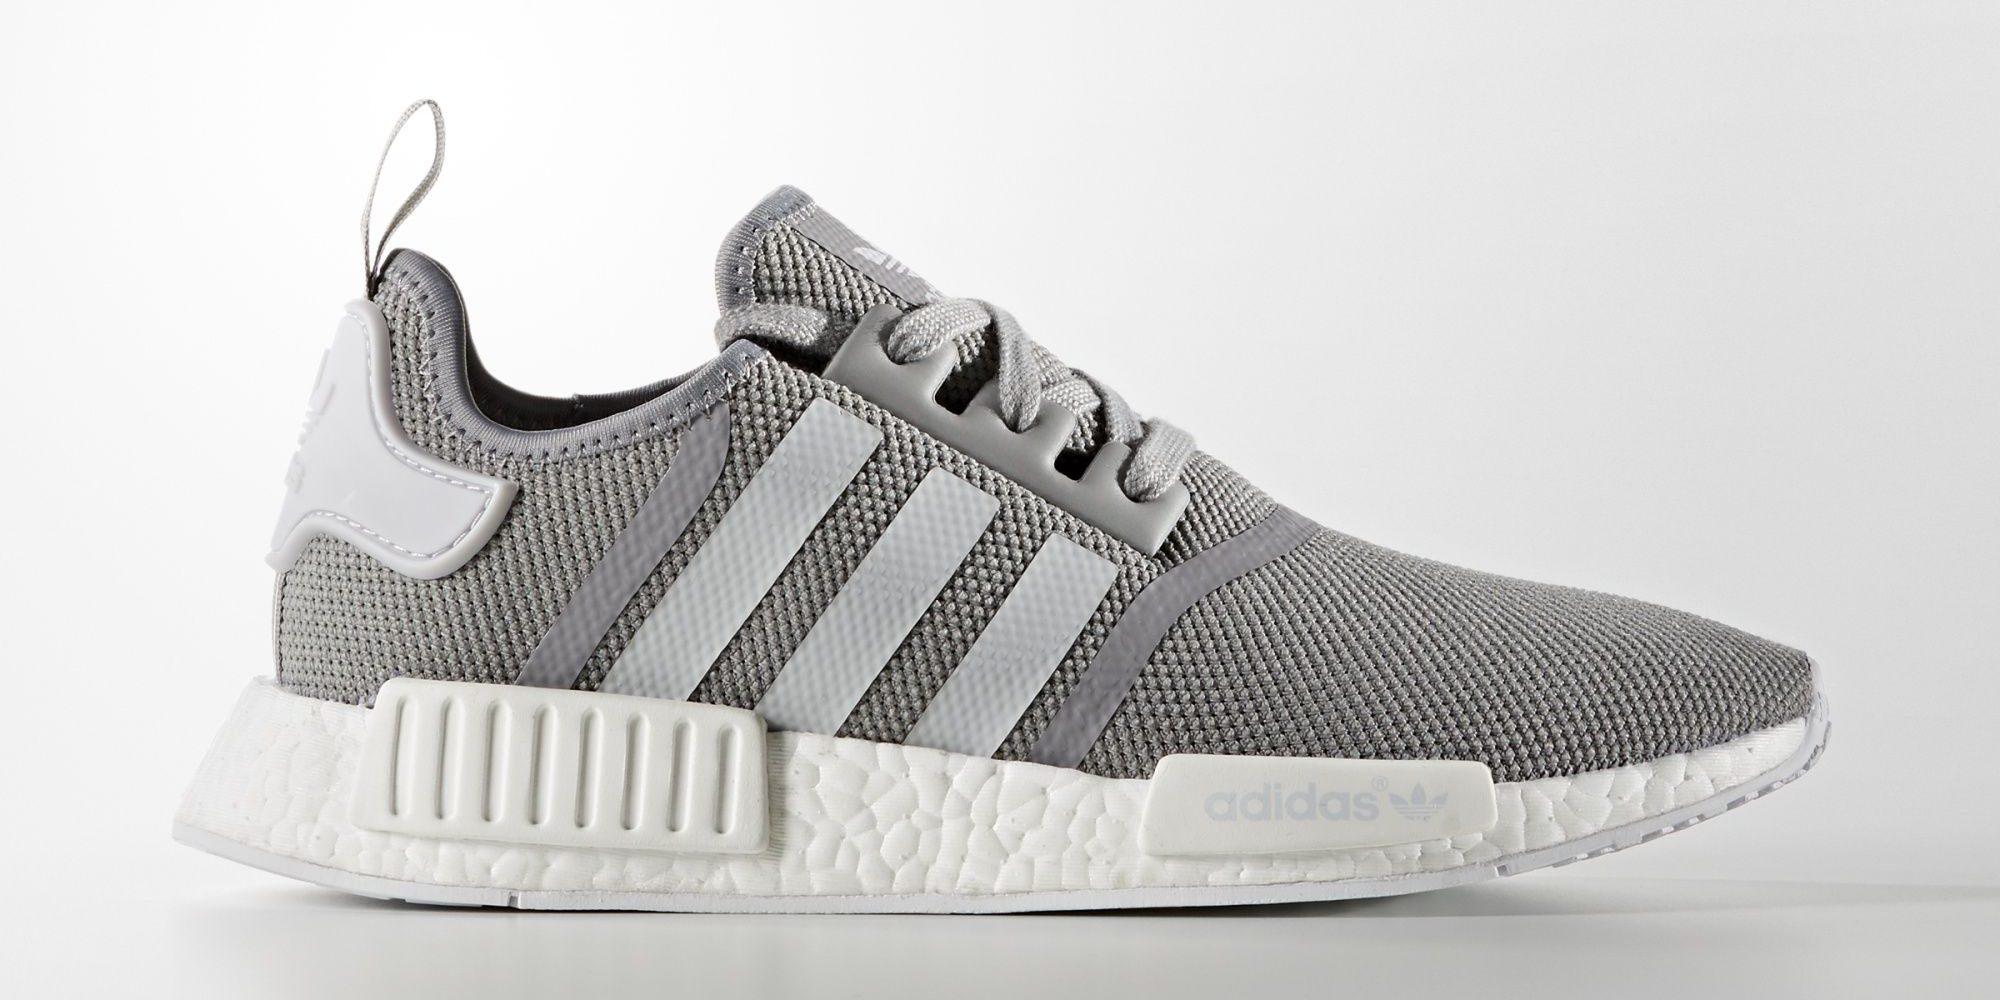 adidas nmd r1 womens grey and white adidas nmd release dates may 2017 calendar